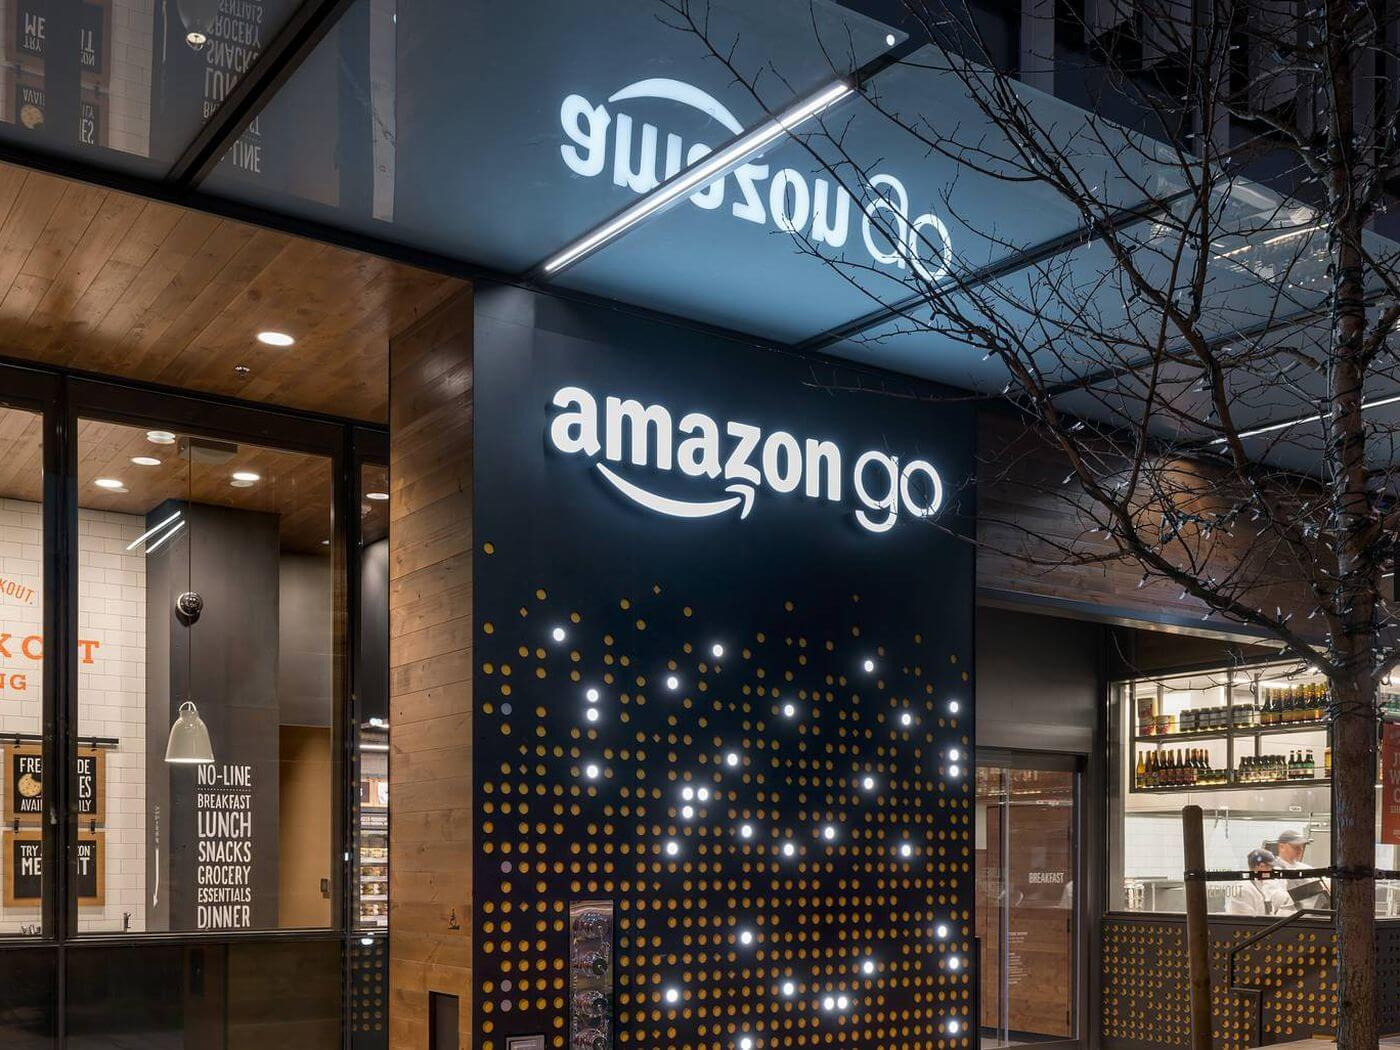 Amazon Could Spend $3 Billion on 'Go' Stores, Analyst Says